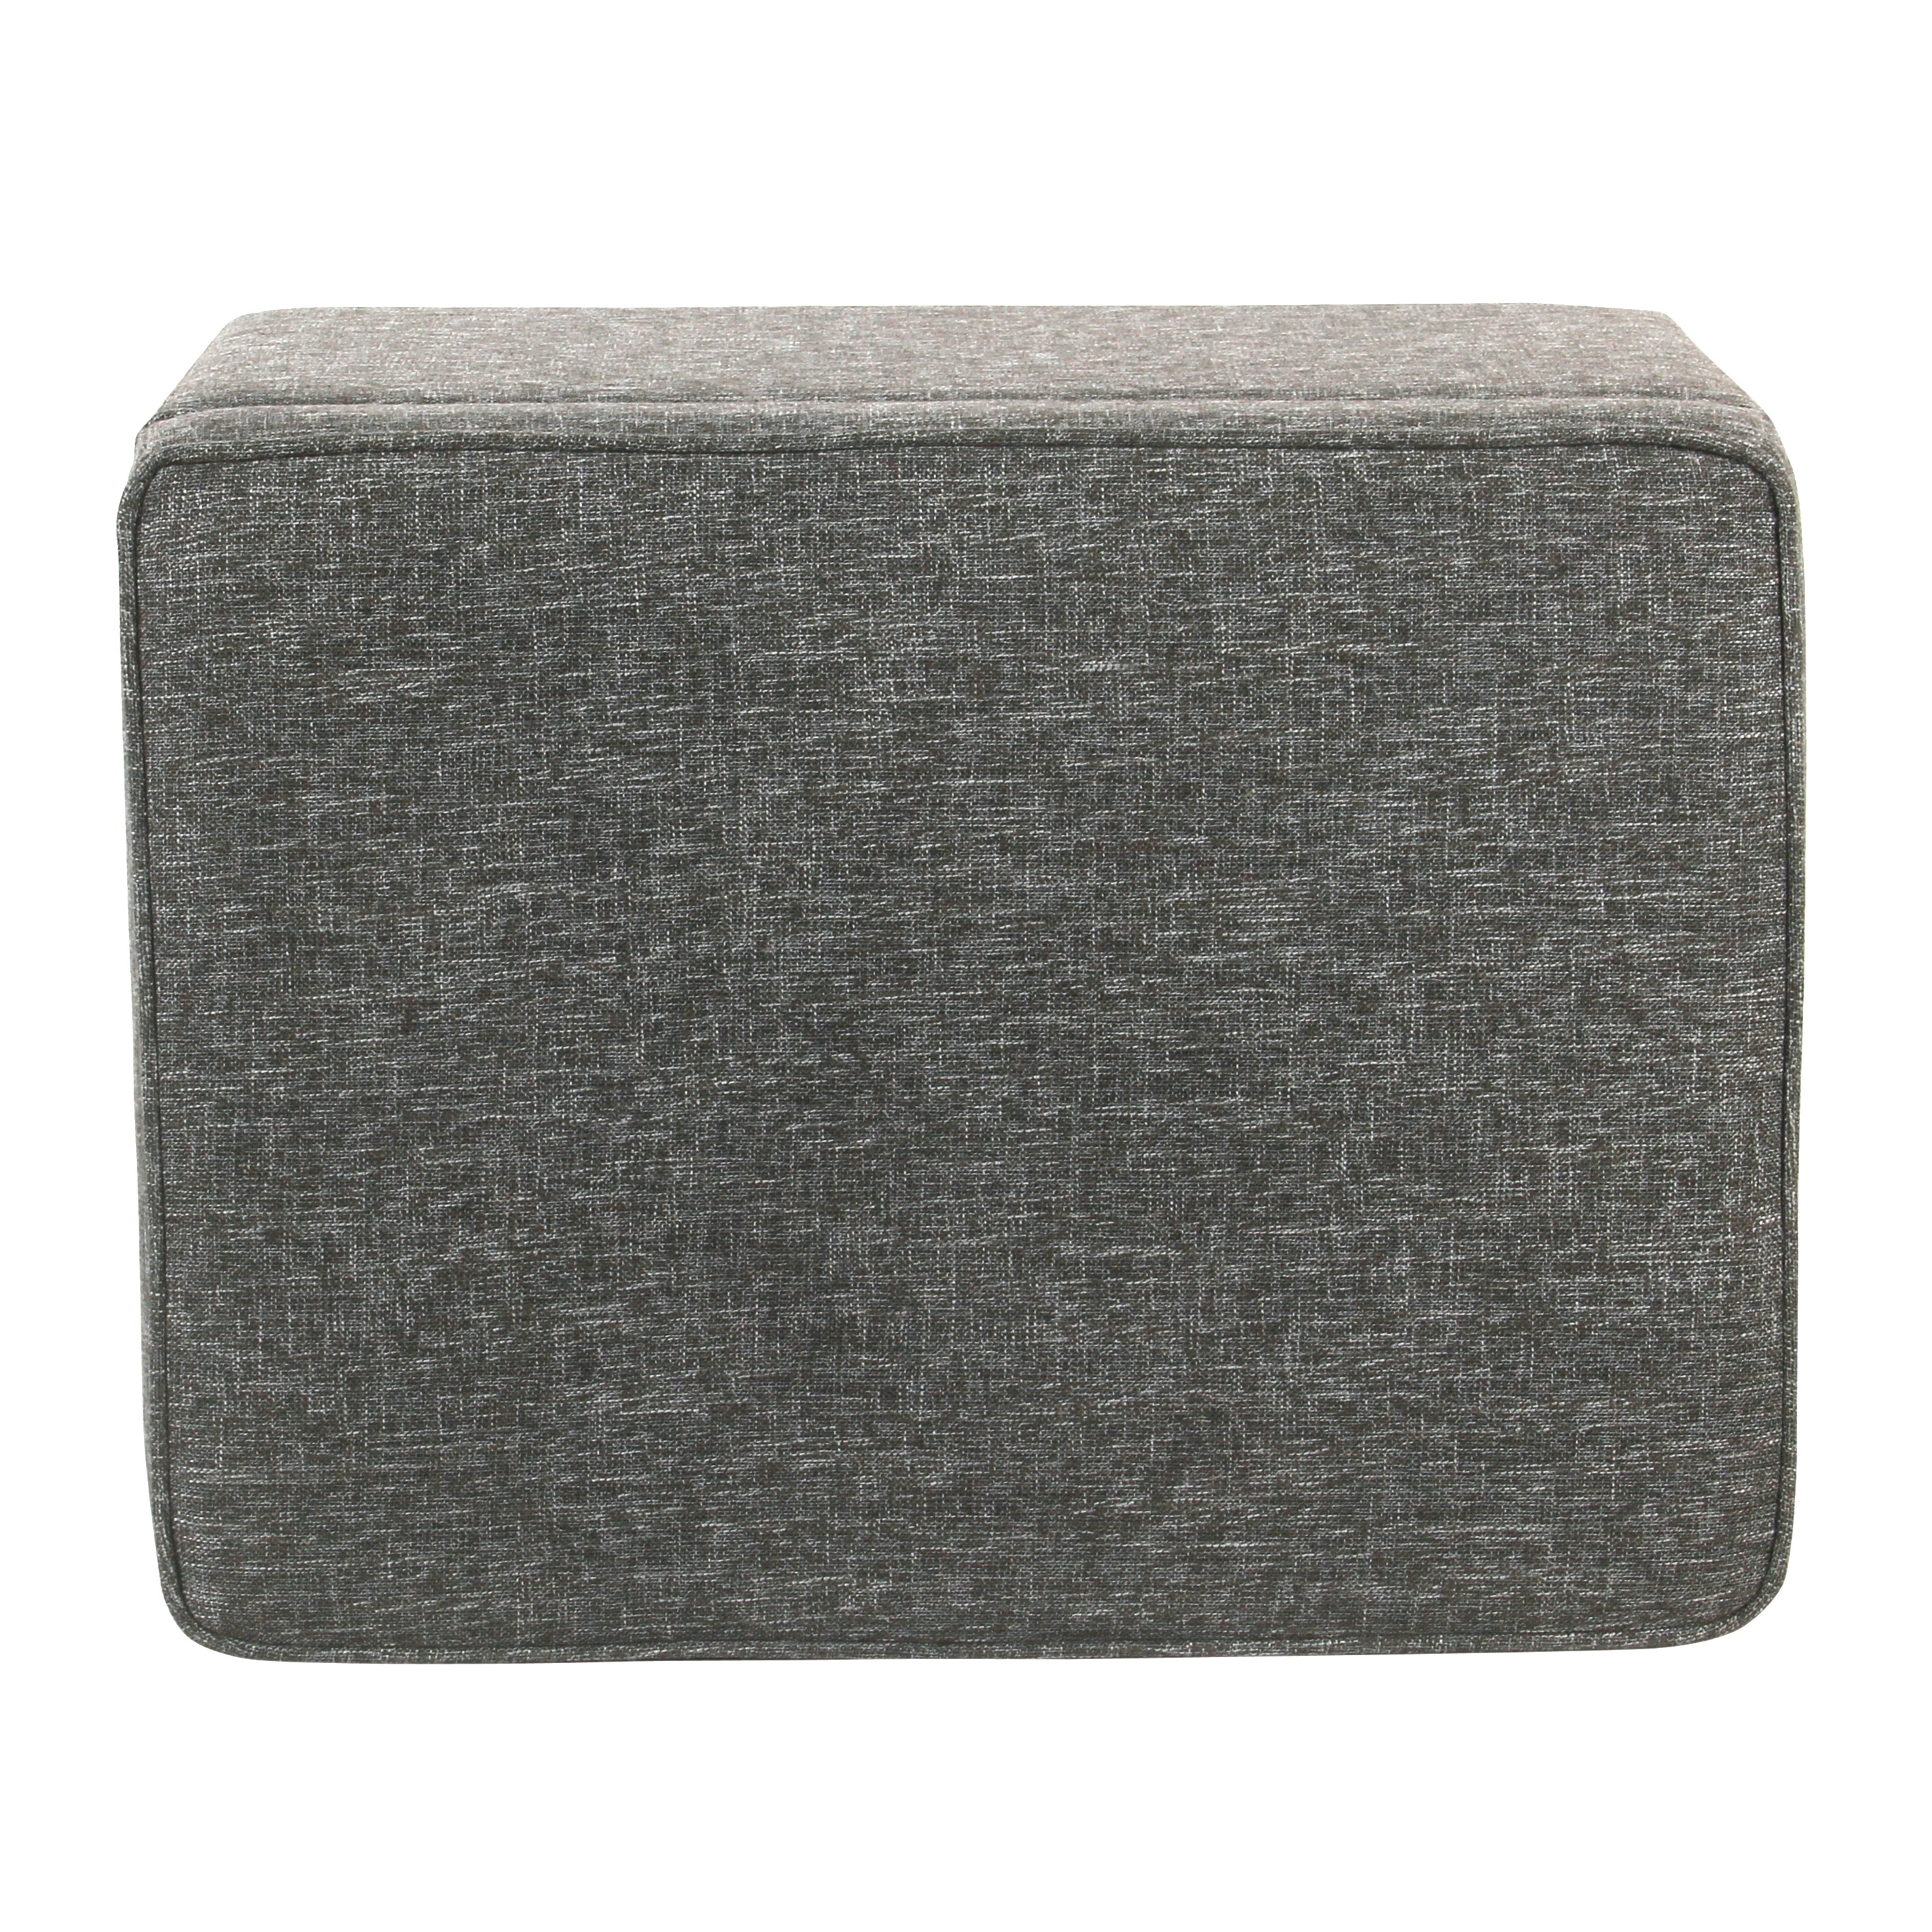 HomePop Medium Storage Ottoman   Slate Gray   Free Shipping Today    Overstock   24281264